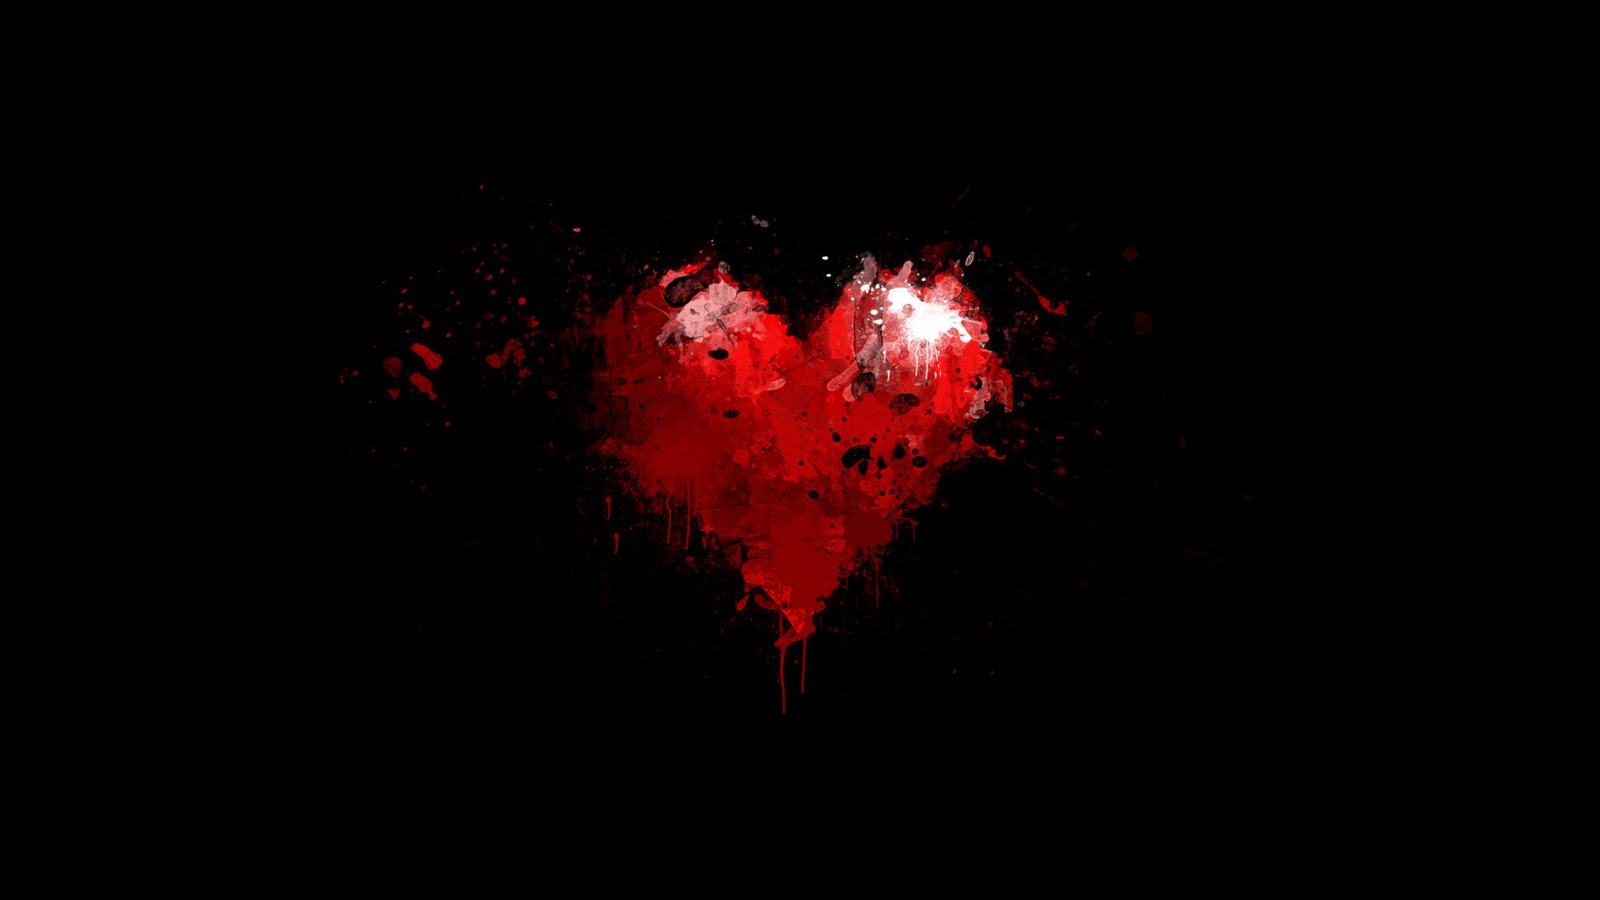 Sad In Love Girl Wallpaper Minimalism Black Red Heart Paint Drop Hd Love Wallpaper